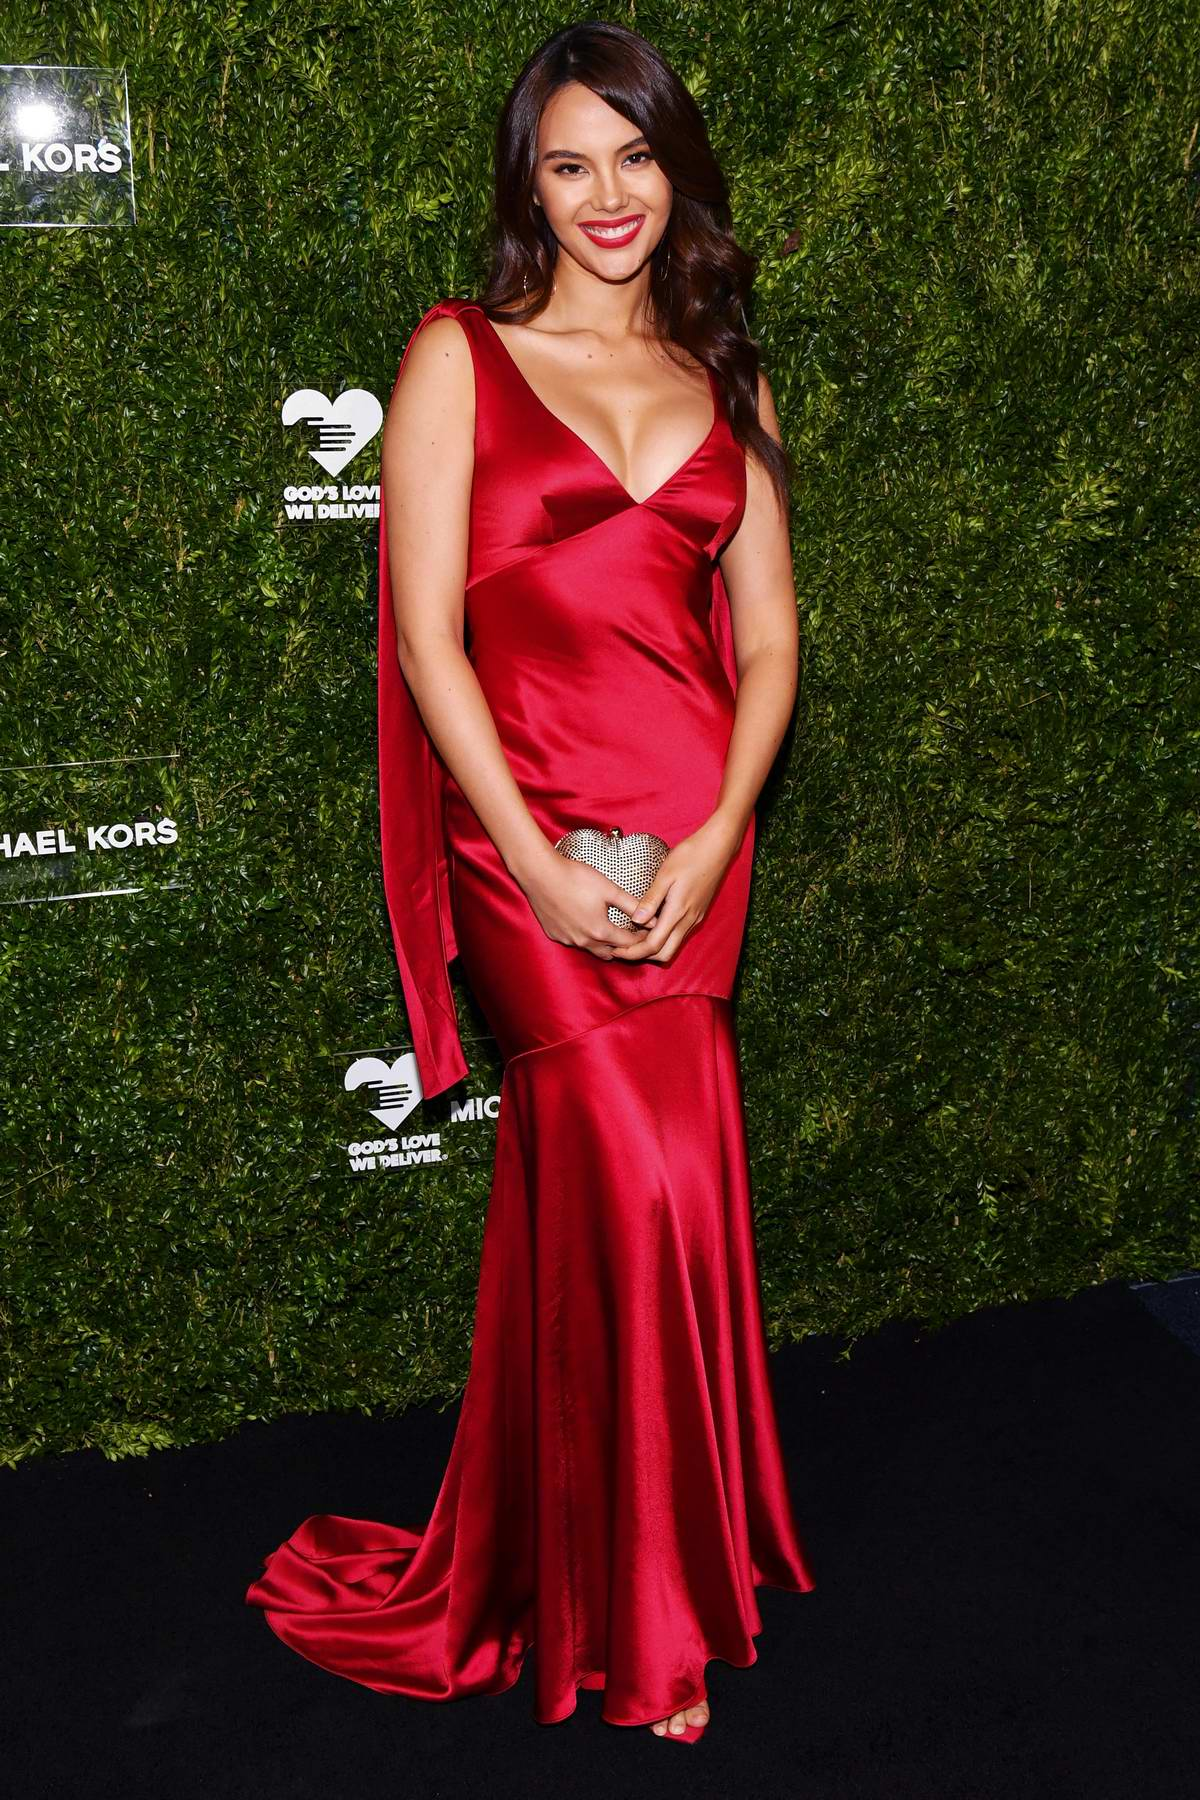 Catriona Gray attends God's Love We Deliver 13th Annual Golden Heart Awards Celebration at Cipriani South Street in New York City